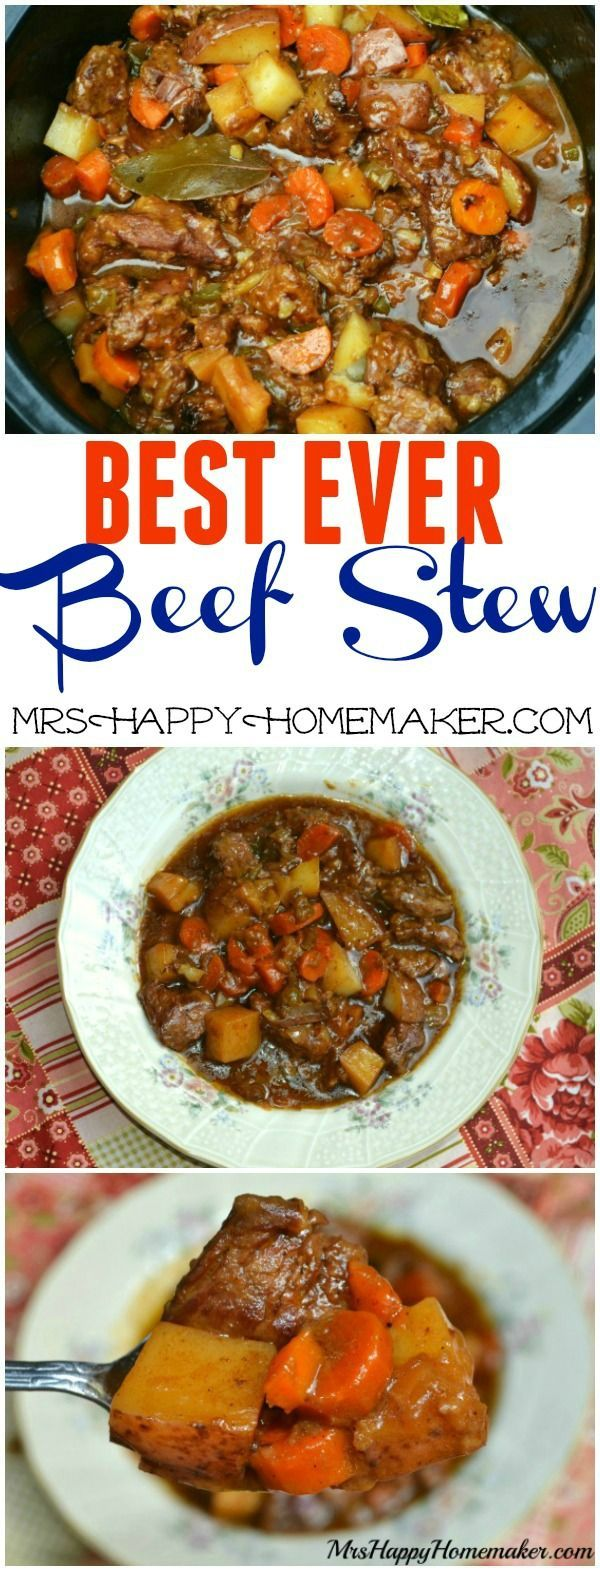 balenciaga handbags BEST EVER Beef Stew     34 This is the  1 most popular recipe on my blog  amp  I can see why  It  39 s SO ADDICTIVELY DELICIOUS  Just read the comments on this recipe  amp  see for yourself   34    www mrshappyhomemaker com